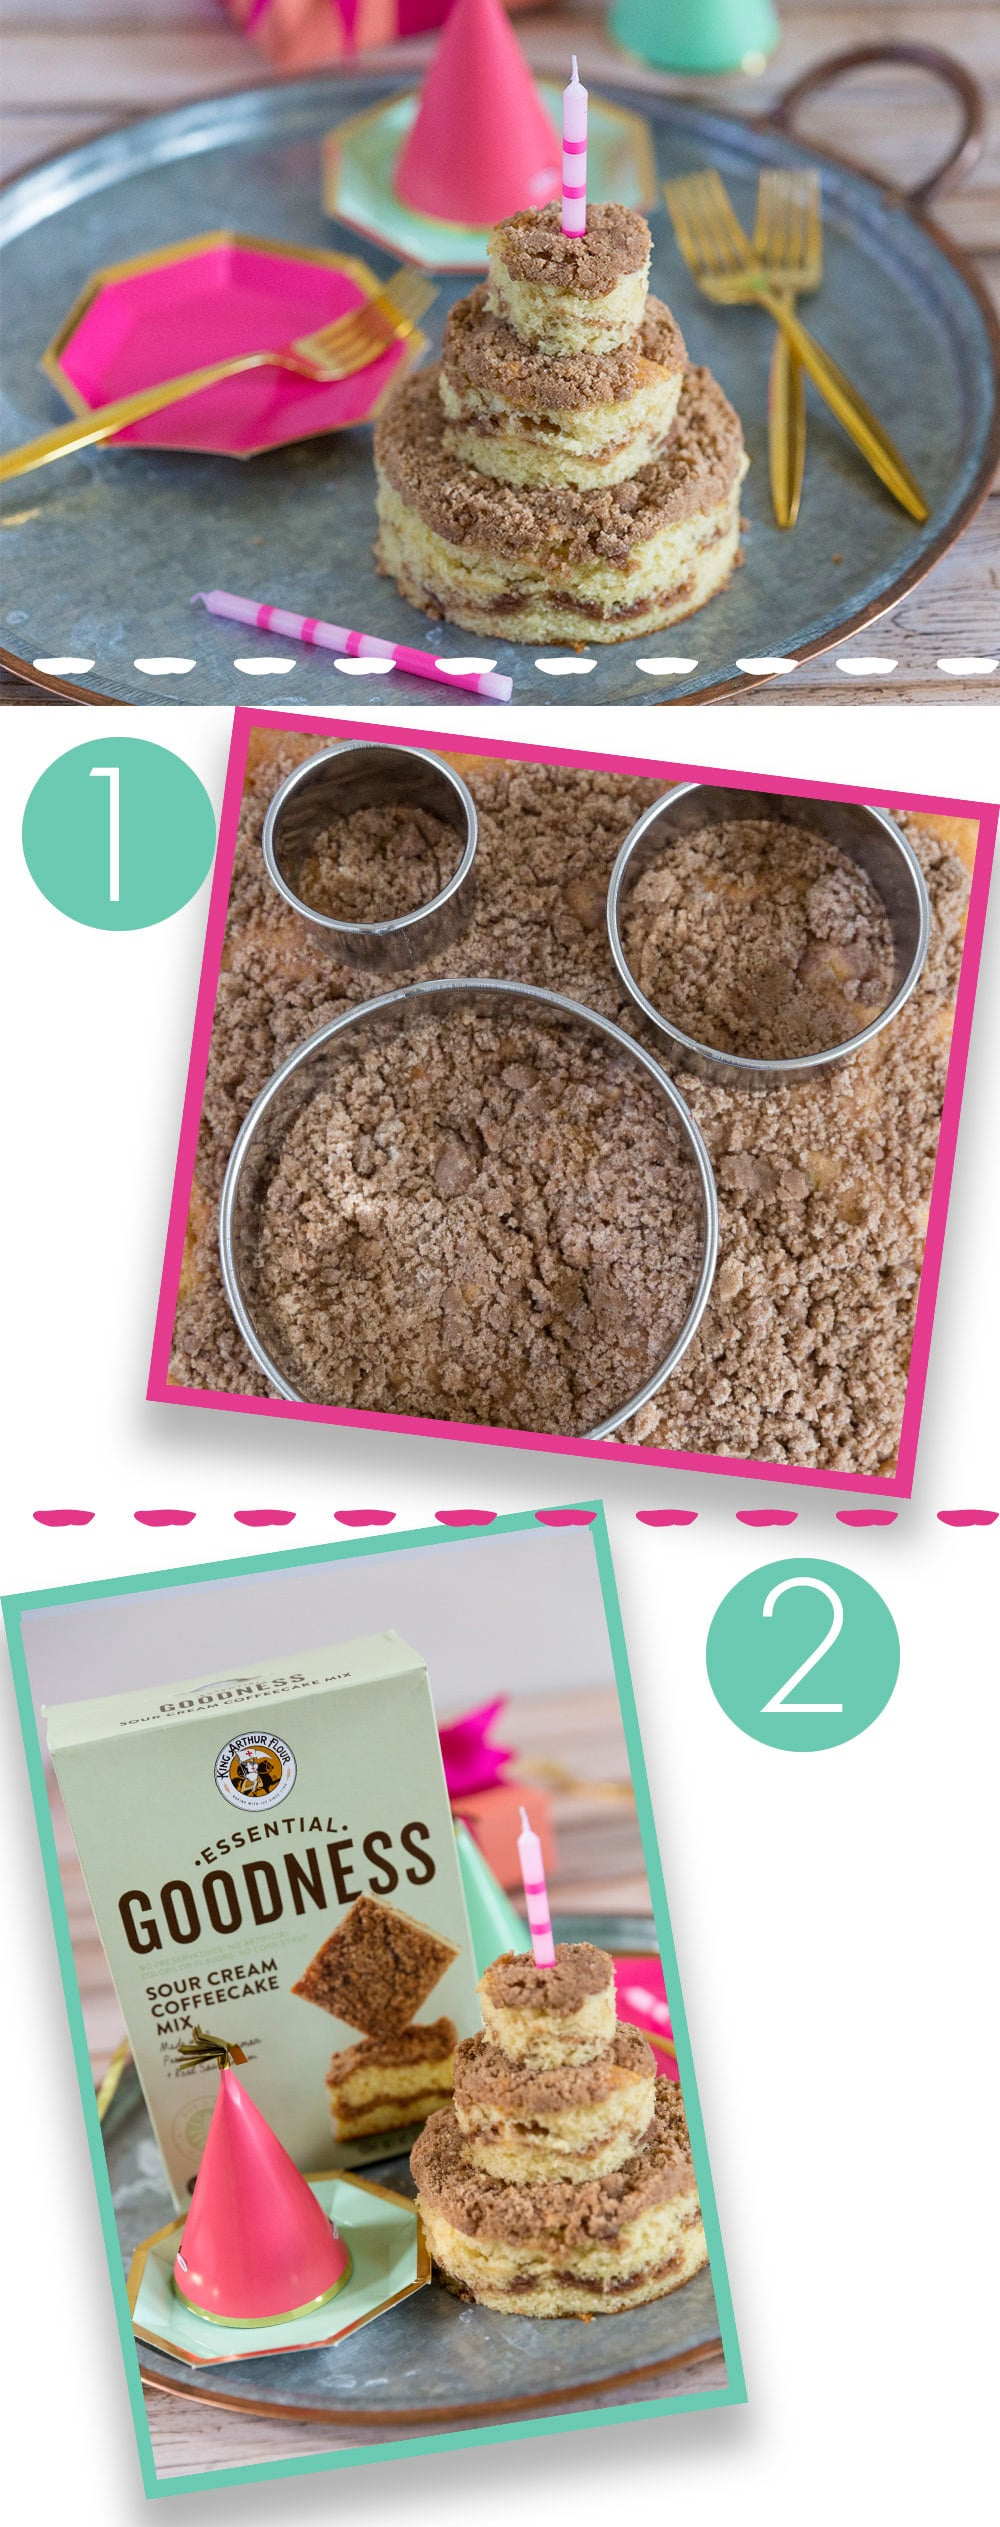 How to make a birthday cake out of coffee cake!